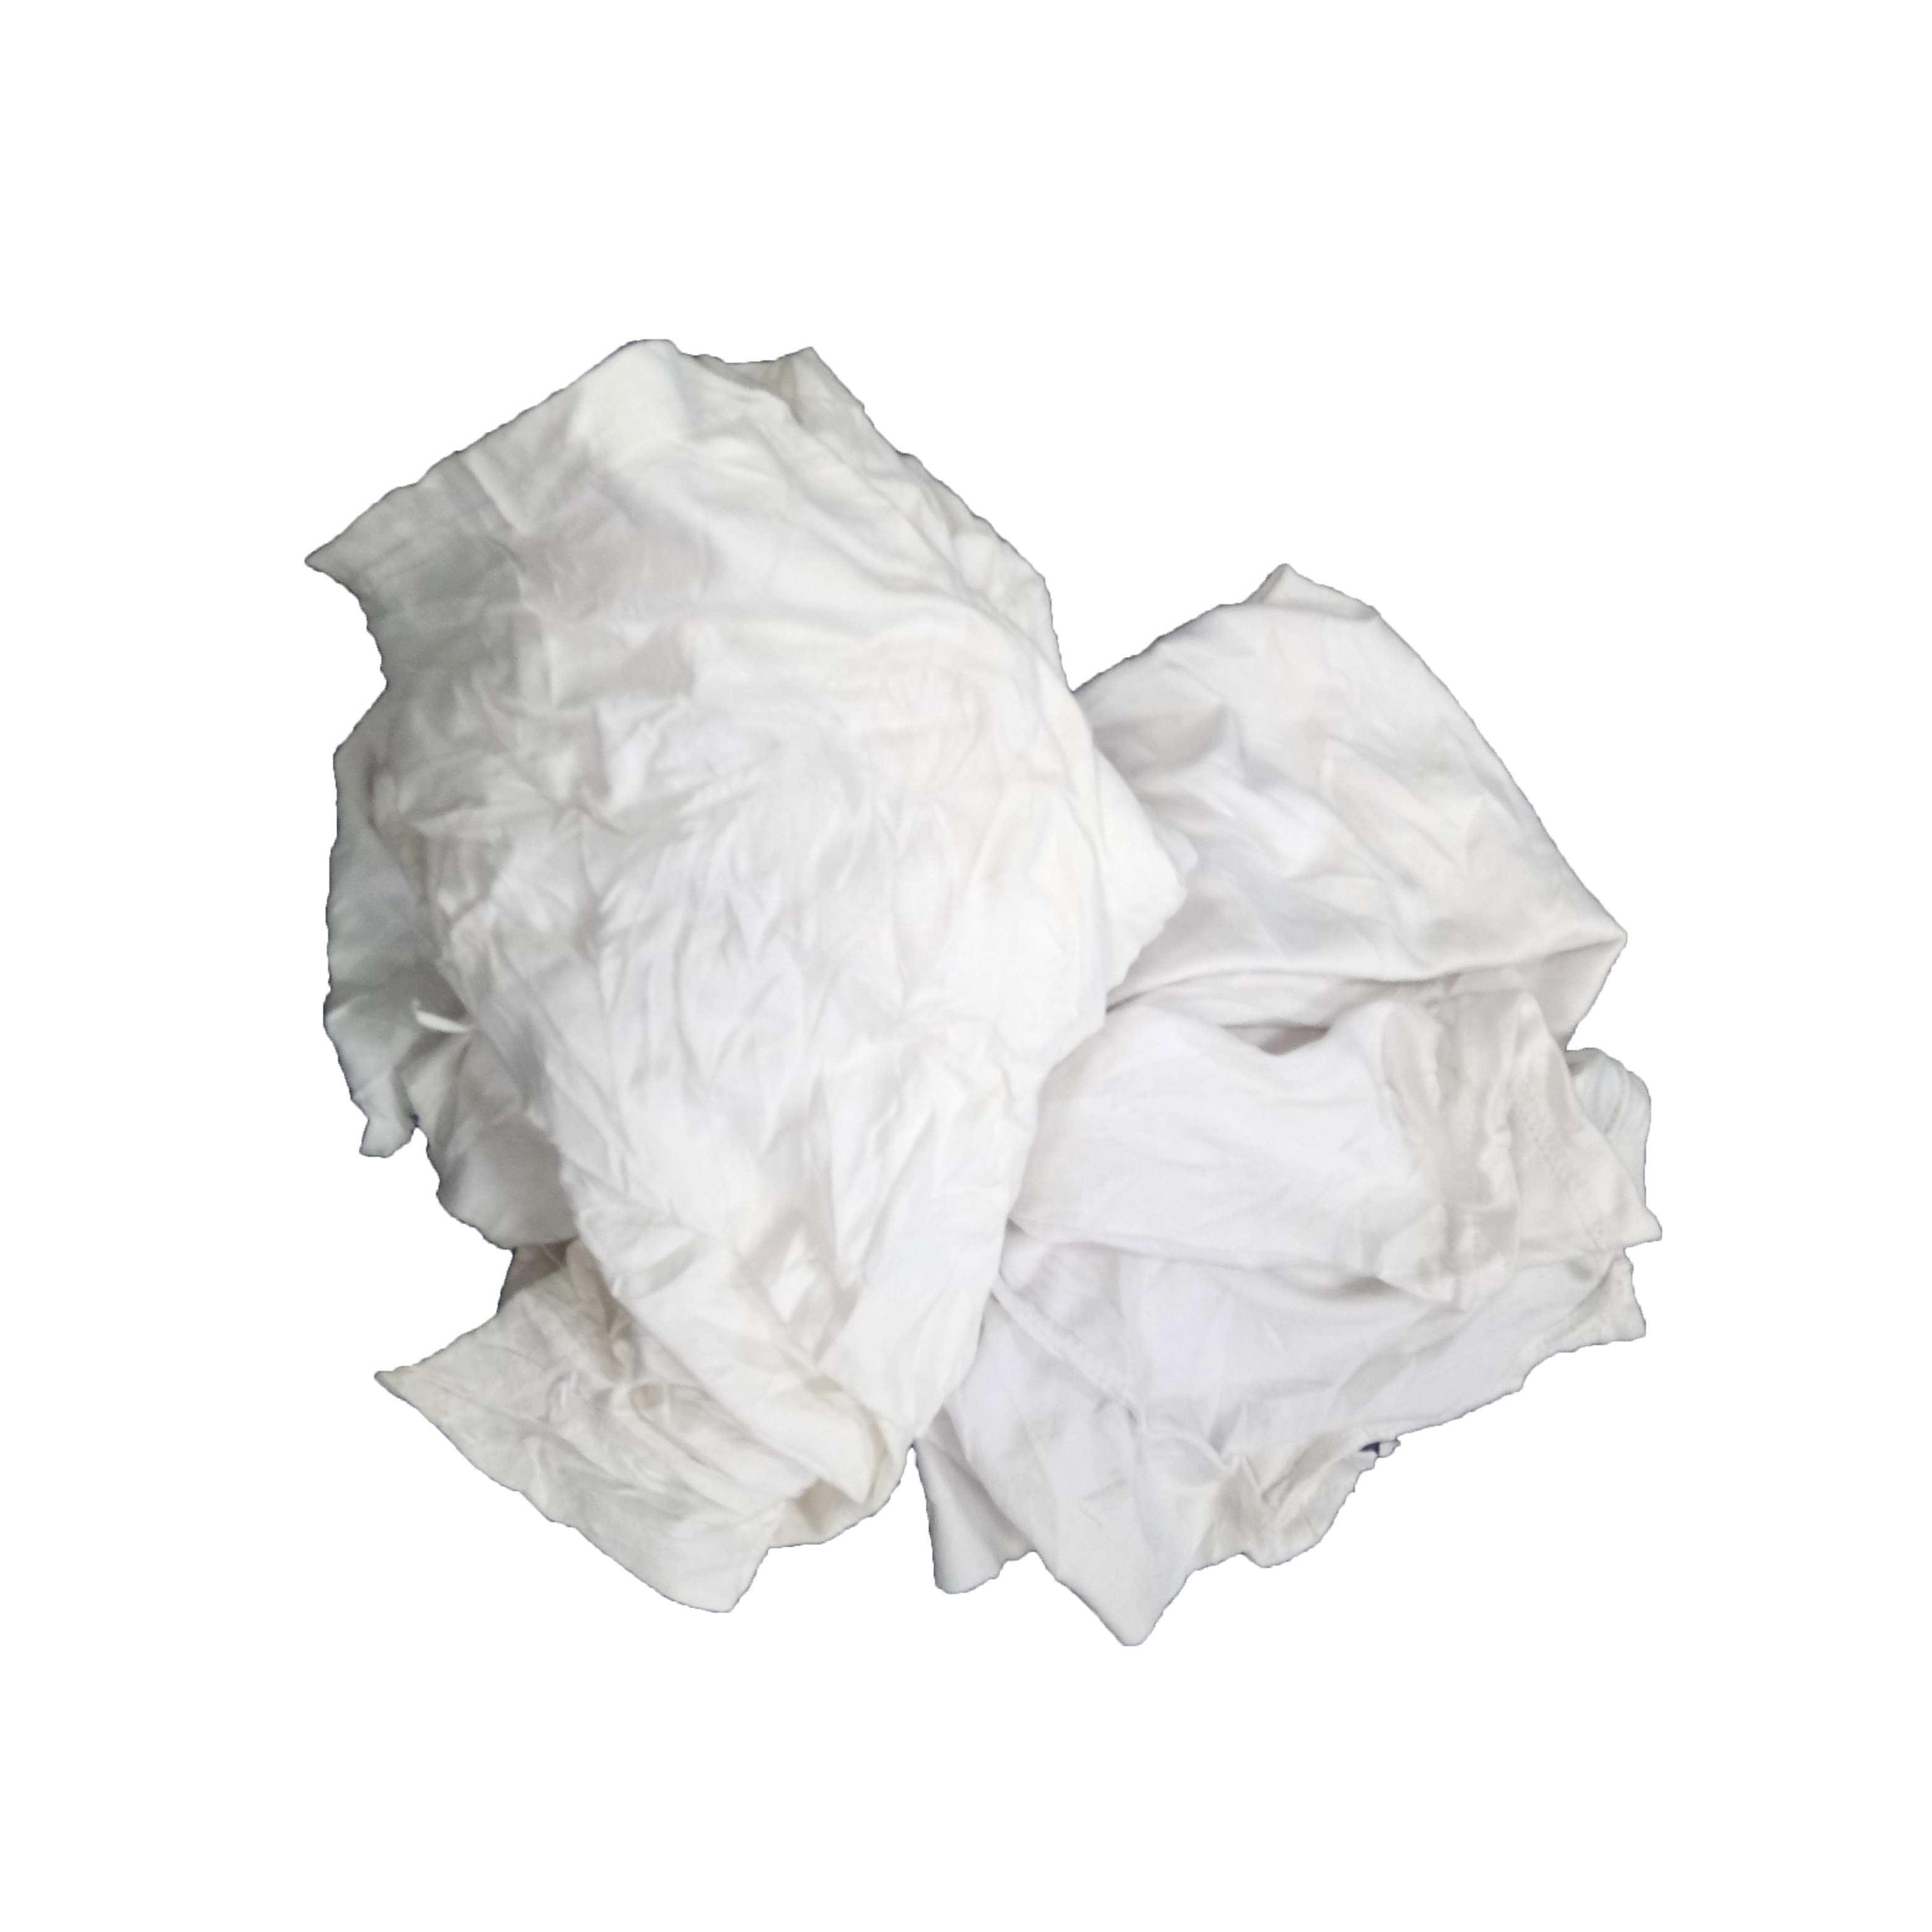 White t shirt waste knitted cutting bales 100% cotton wipe rags